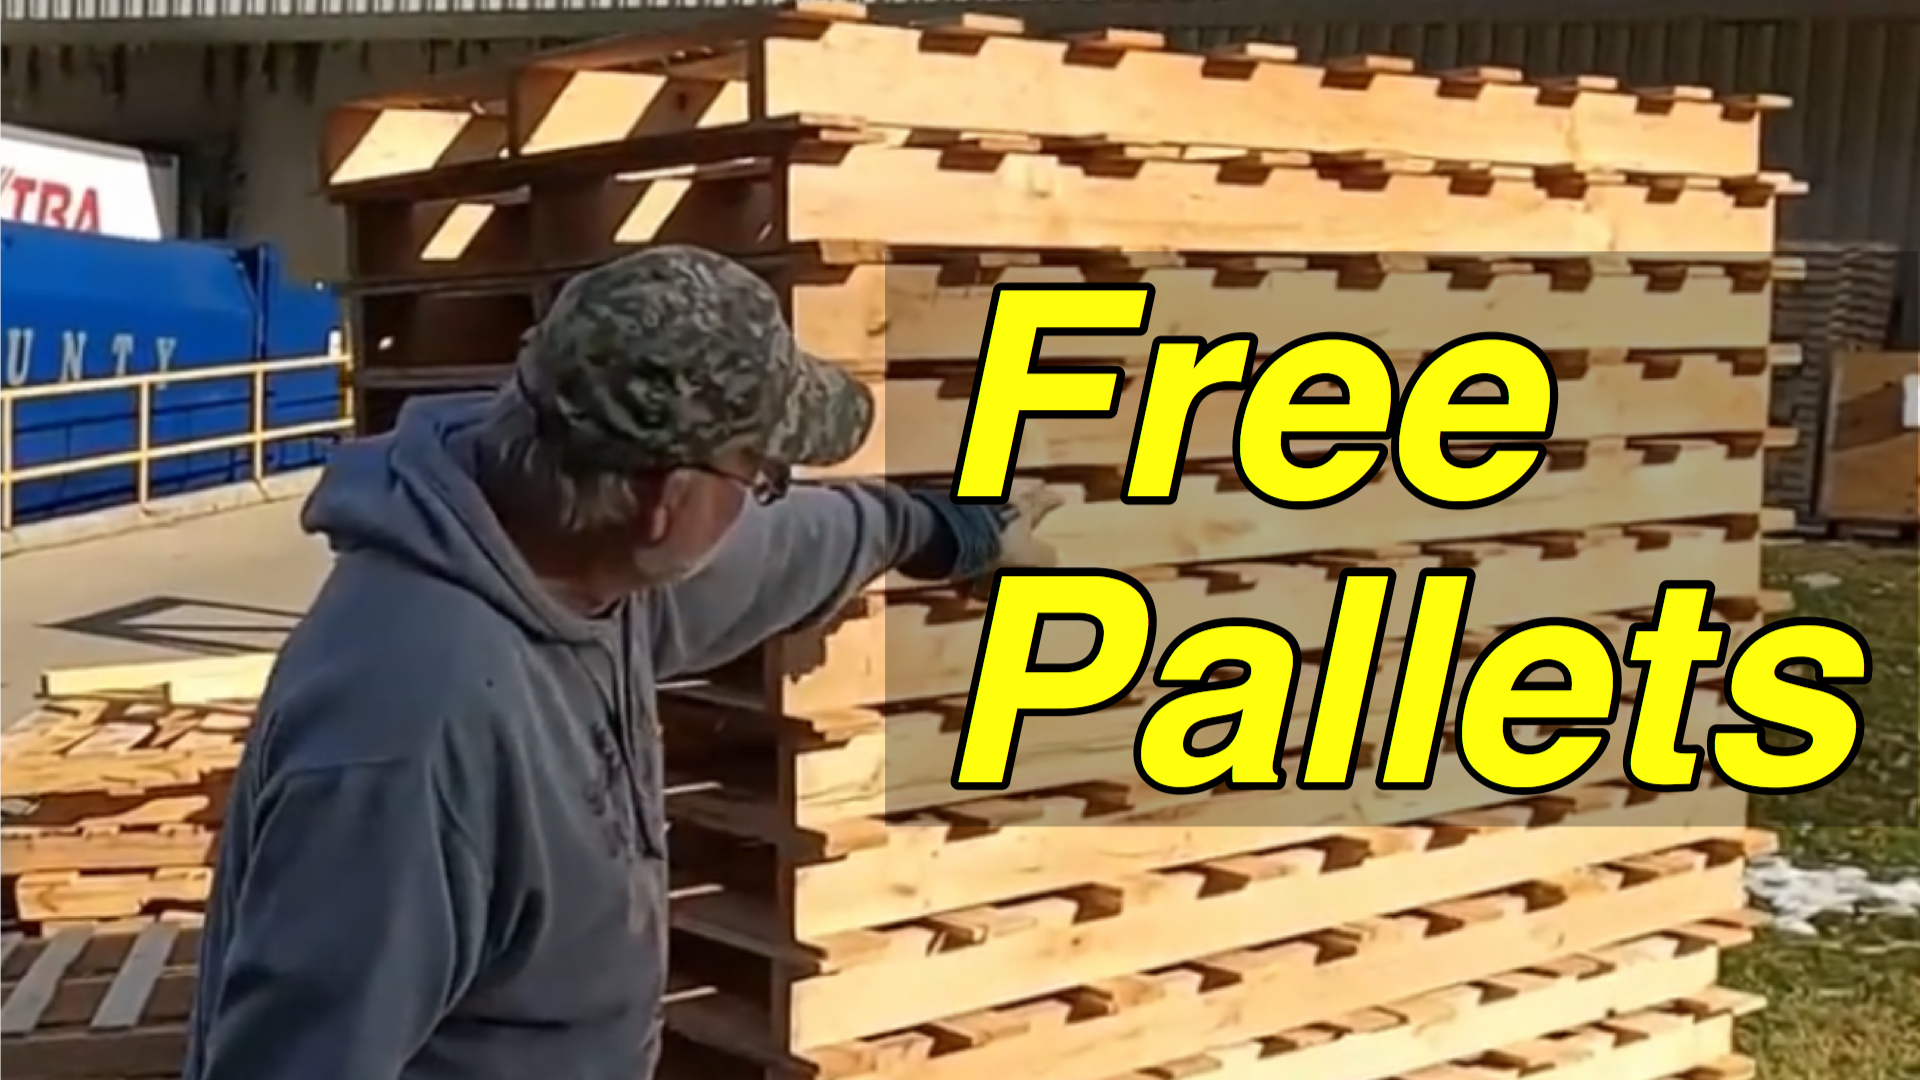 Find FREE Pallets in your area!! - Pallet Hobby